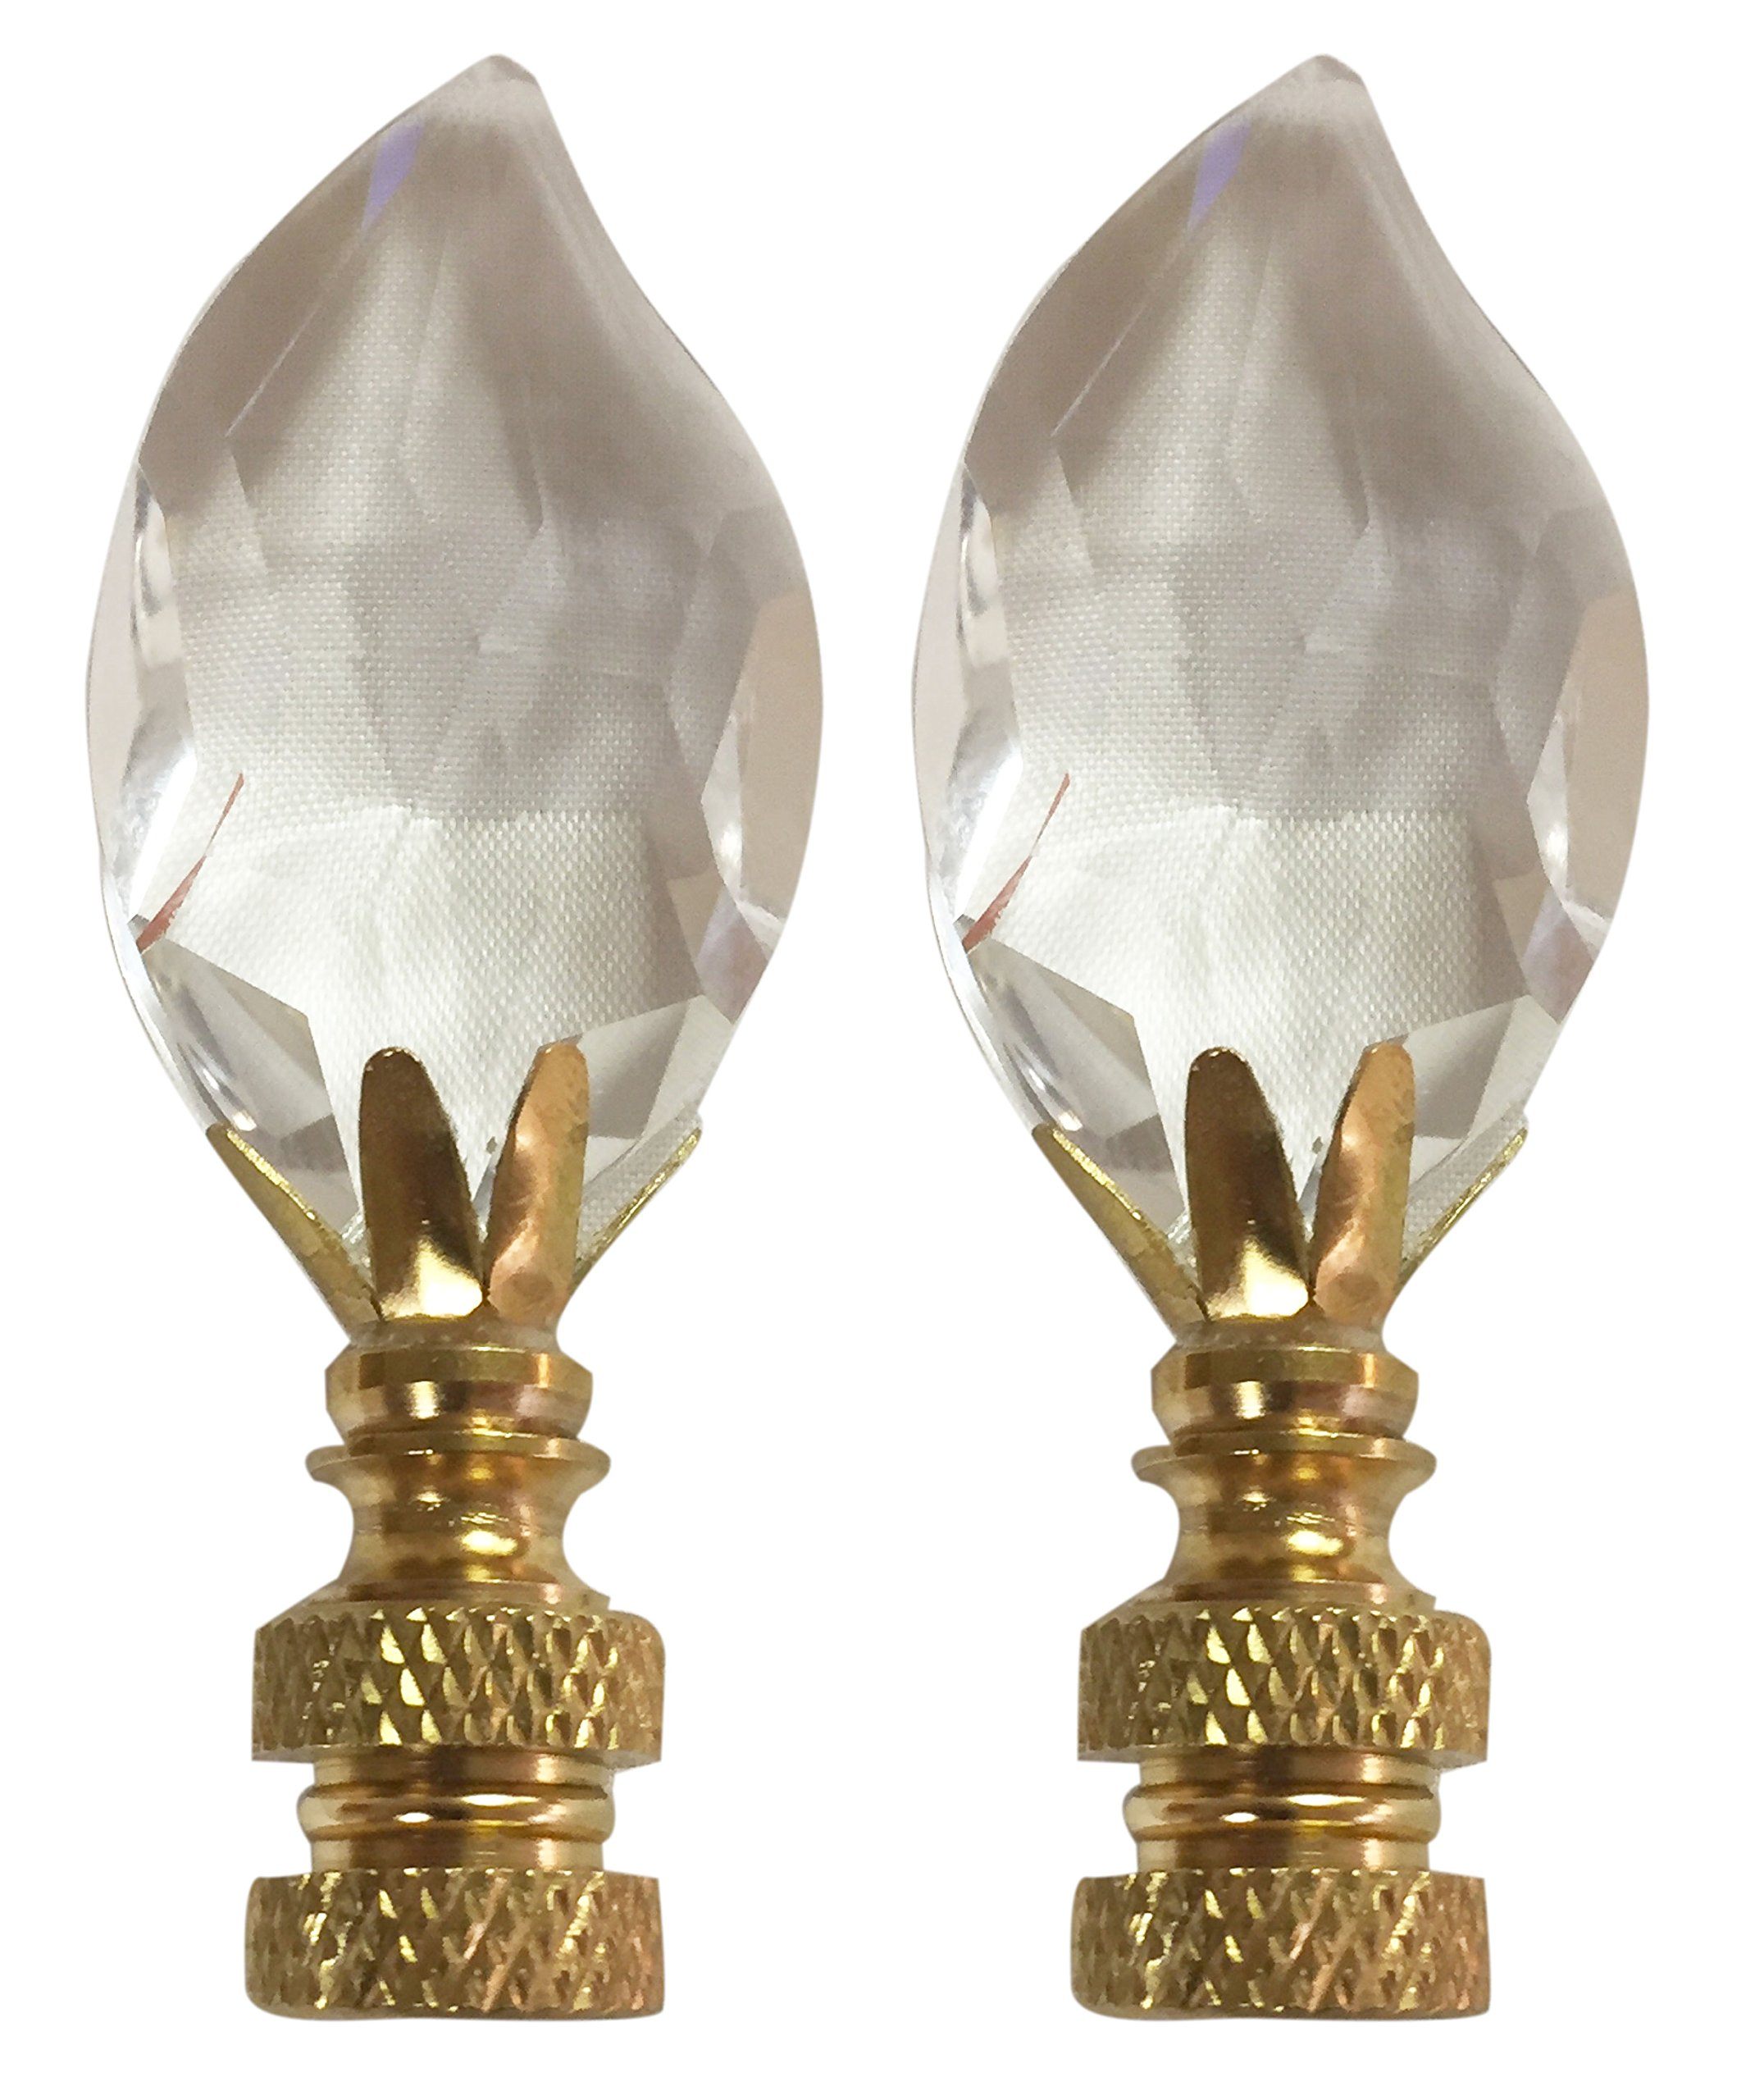 Royal Designs CCF2014-PB-2 Leaf Cut Clear K9 Crystal Finial for Lamp Shade with Polished Brass Base Set of 2, 2 Piece